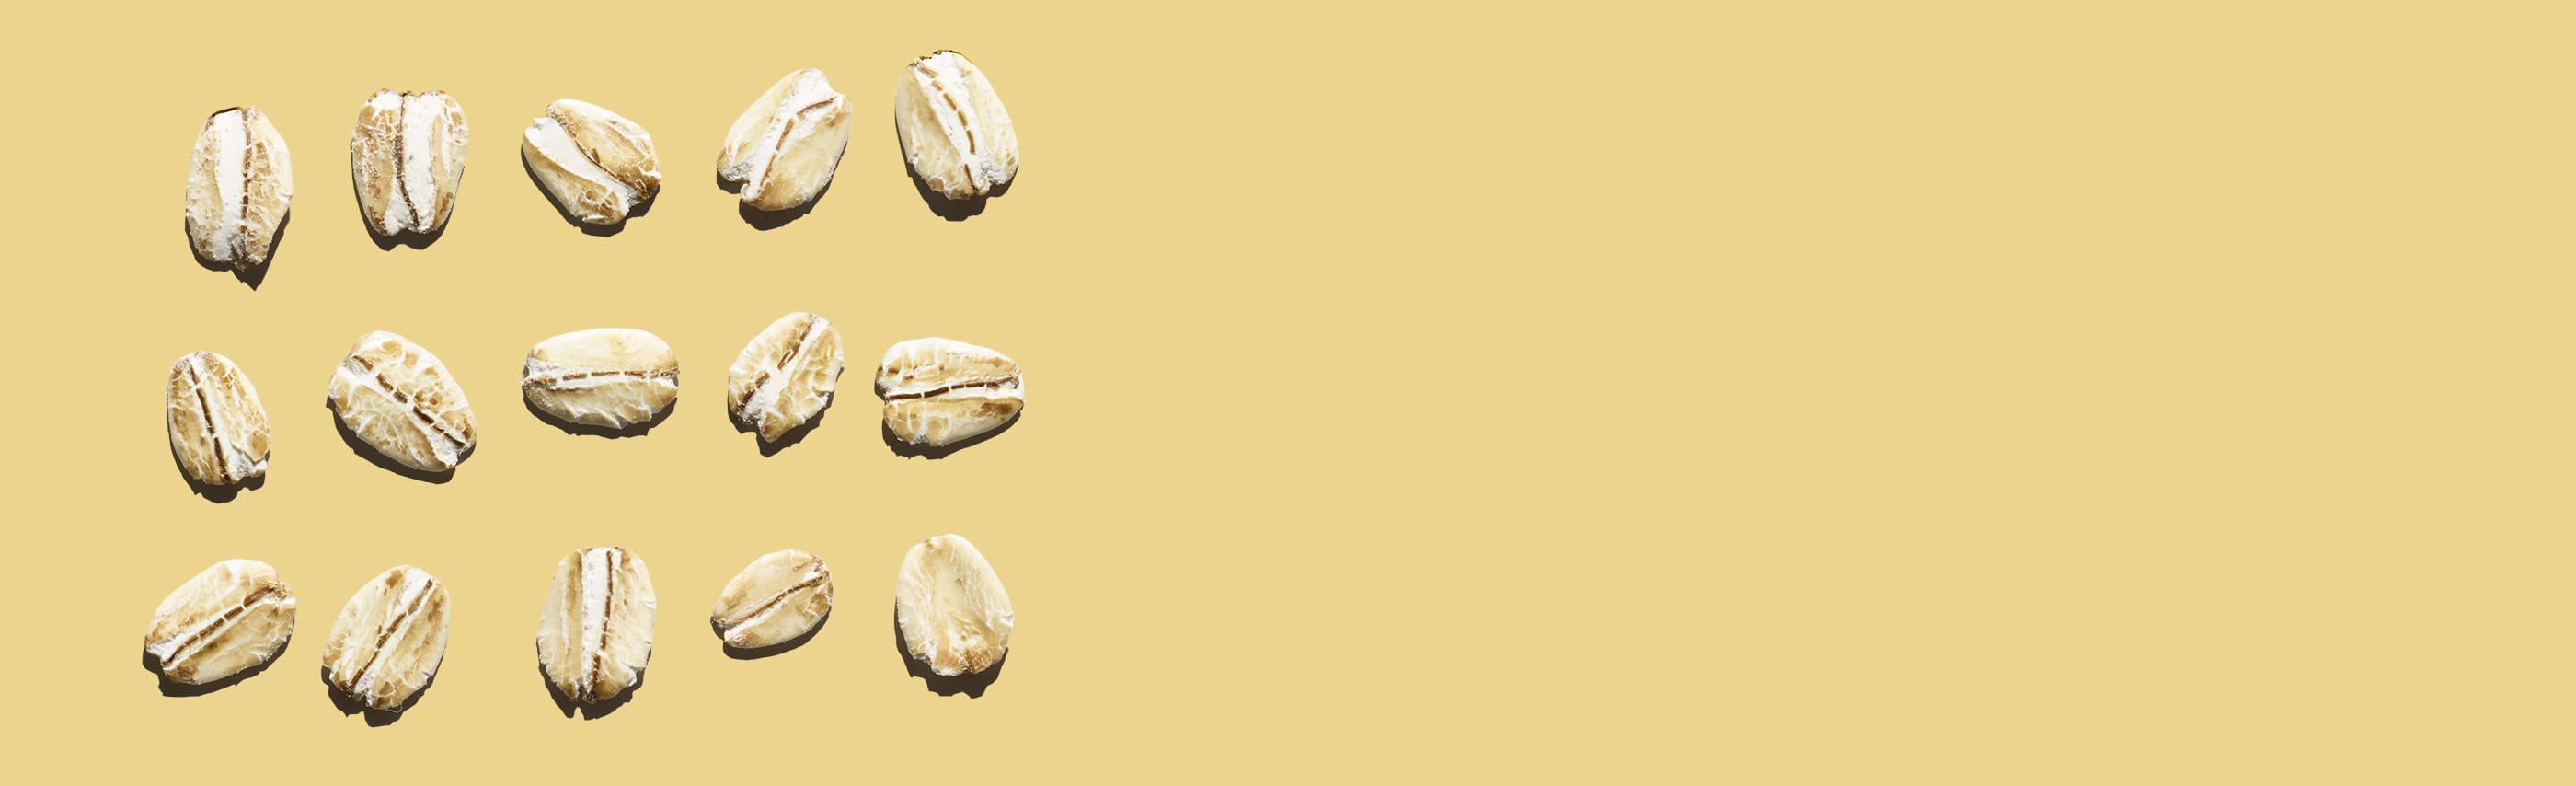 oat kernels grid against a yellow background